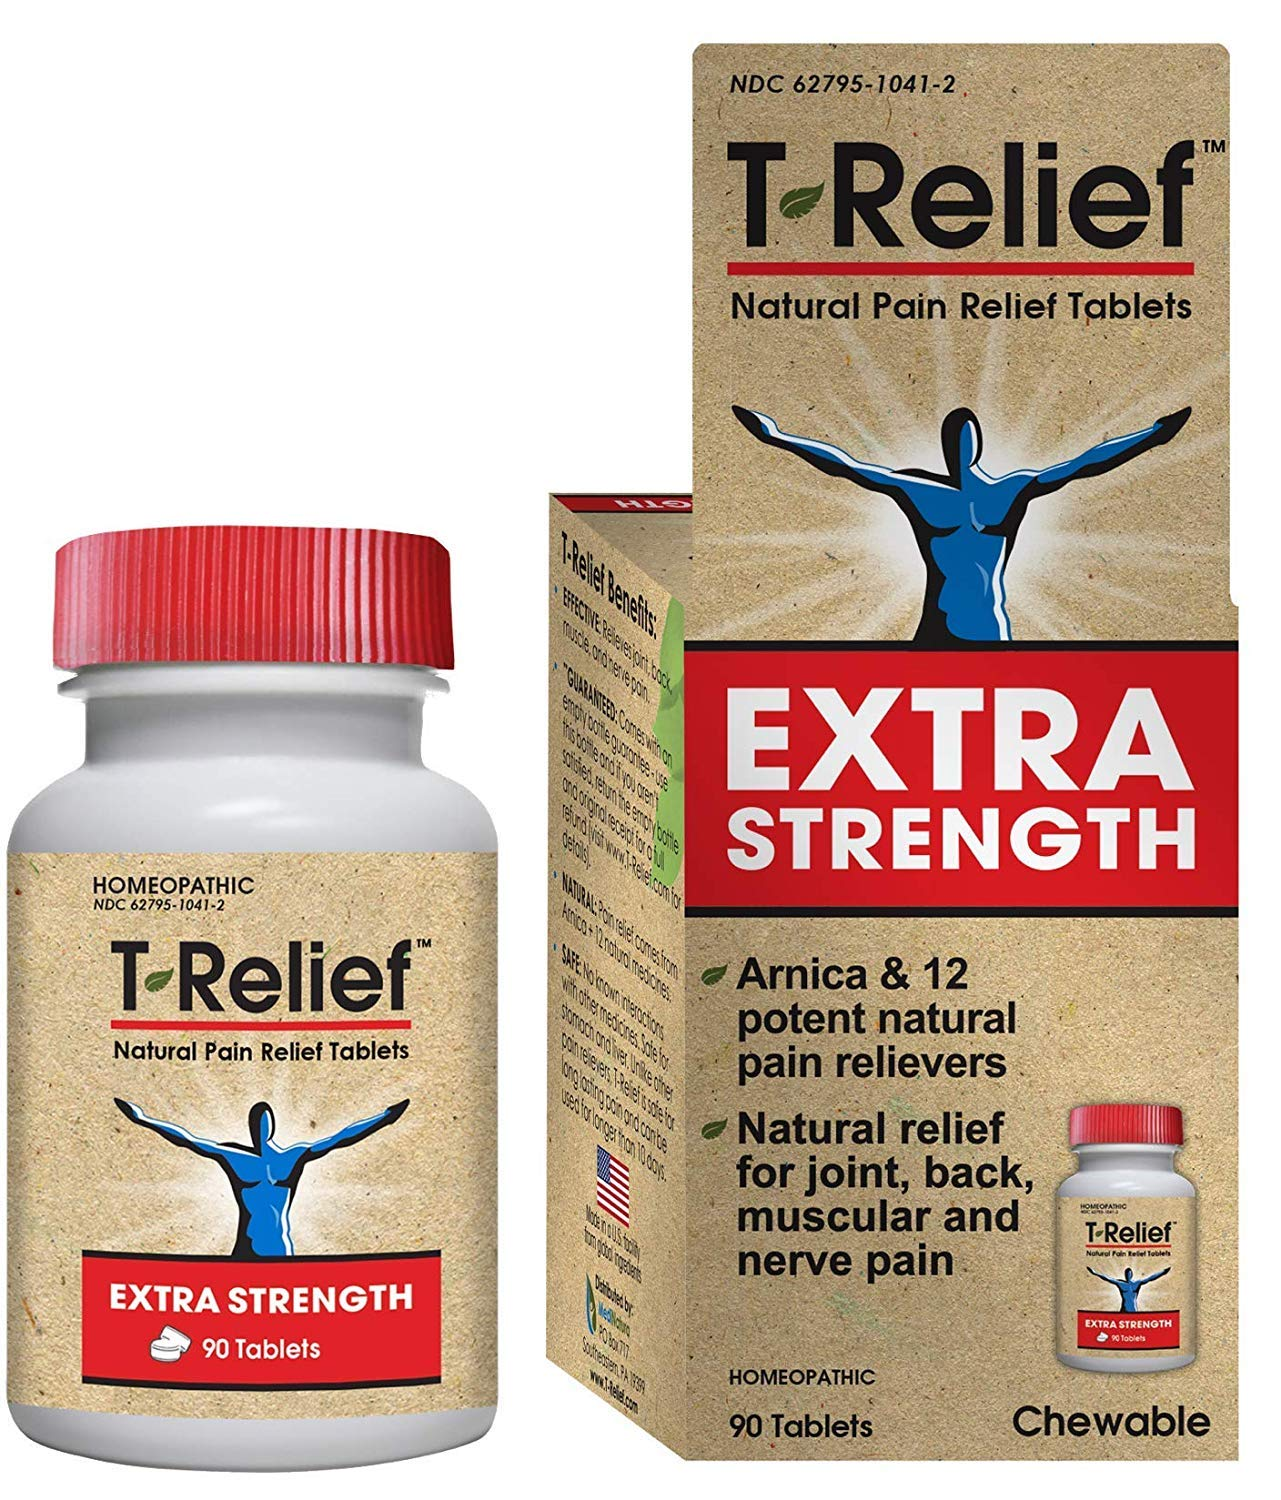 T-Relief Extra Strength Pain Relief Tablets for Minor Joint Pain, Back Pain, Muscle Pain, Nerve Pain & Arthritis Pain - Homeopathic Formula with Arnica - 90 Tablets